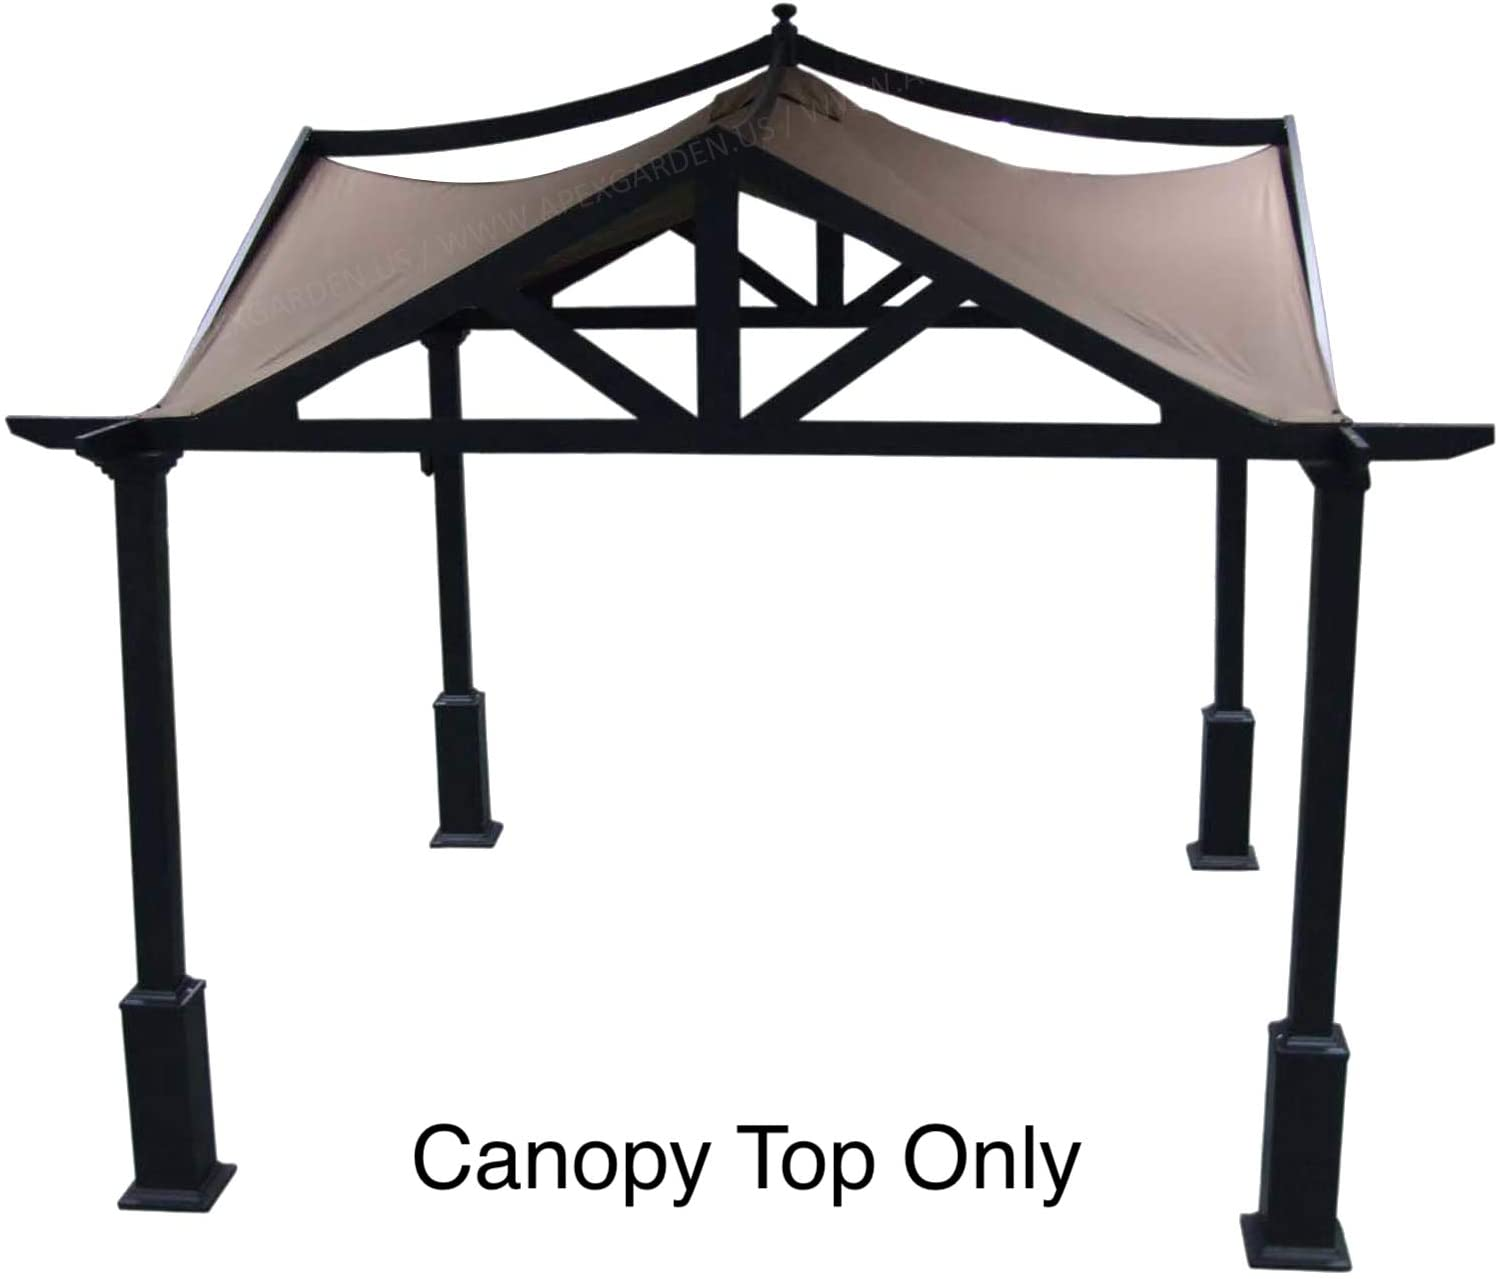 Amazon Com Apex Garden Replacement Canopy Top For Lowe S 10 Ft X Gazebo Gf 12s039b 9a037x Burgundy Outdoor